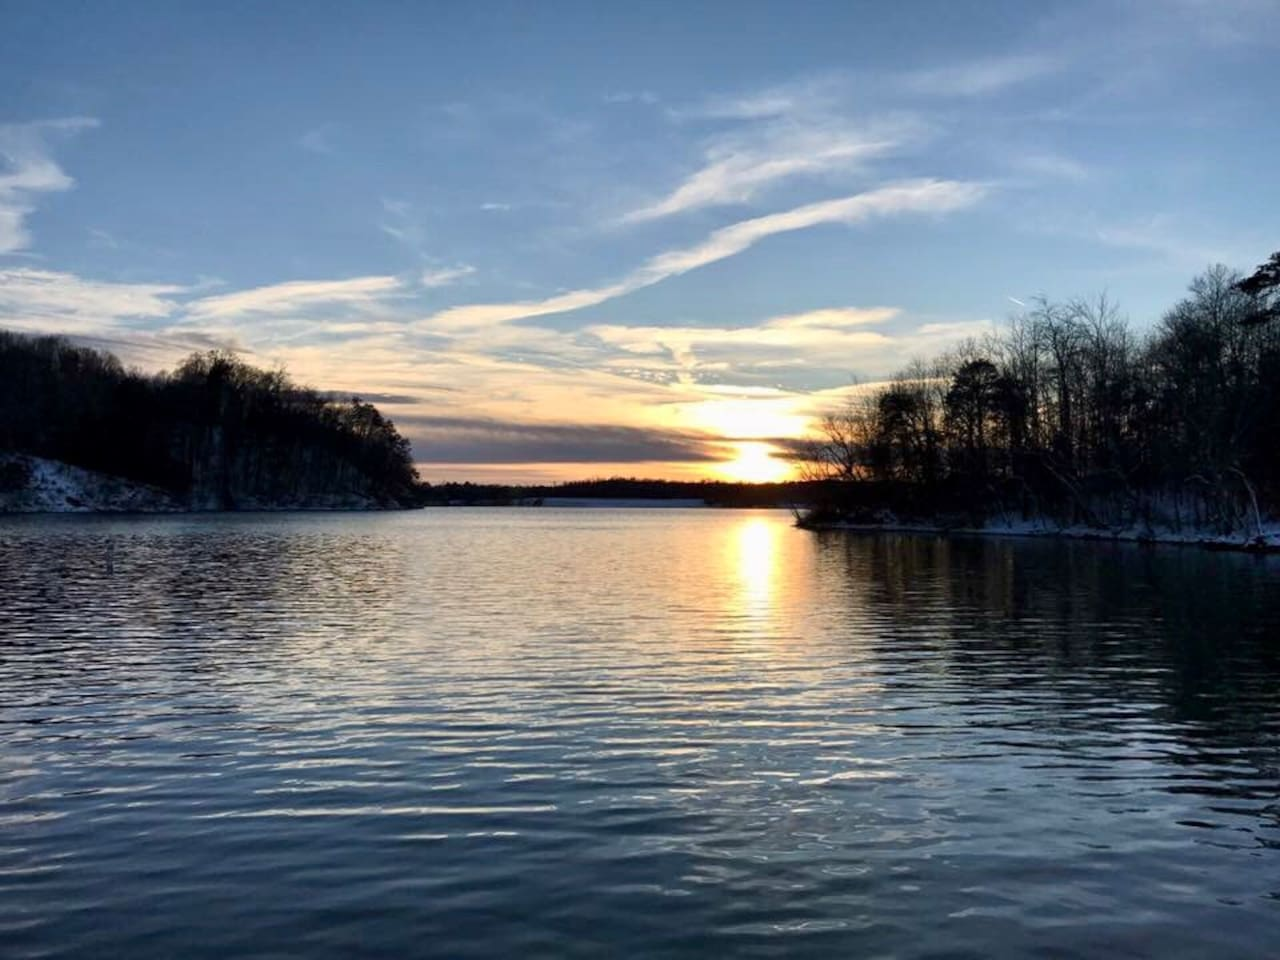 Enjoy gorgeous sunsets from this newly renovated, waterfront Guest Cottage on Lake Lookout Shoals!